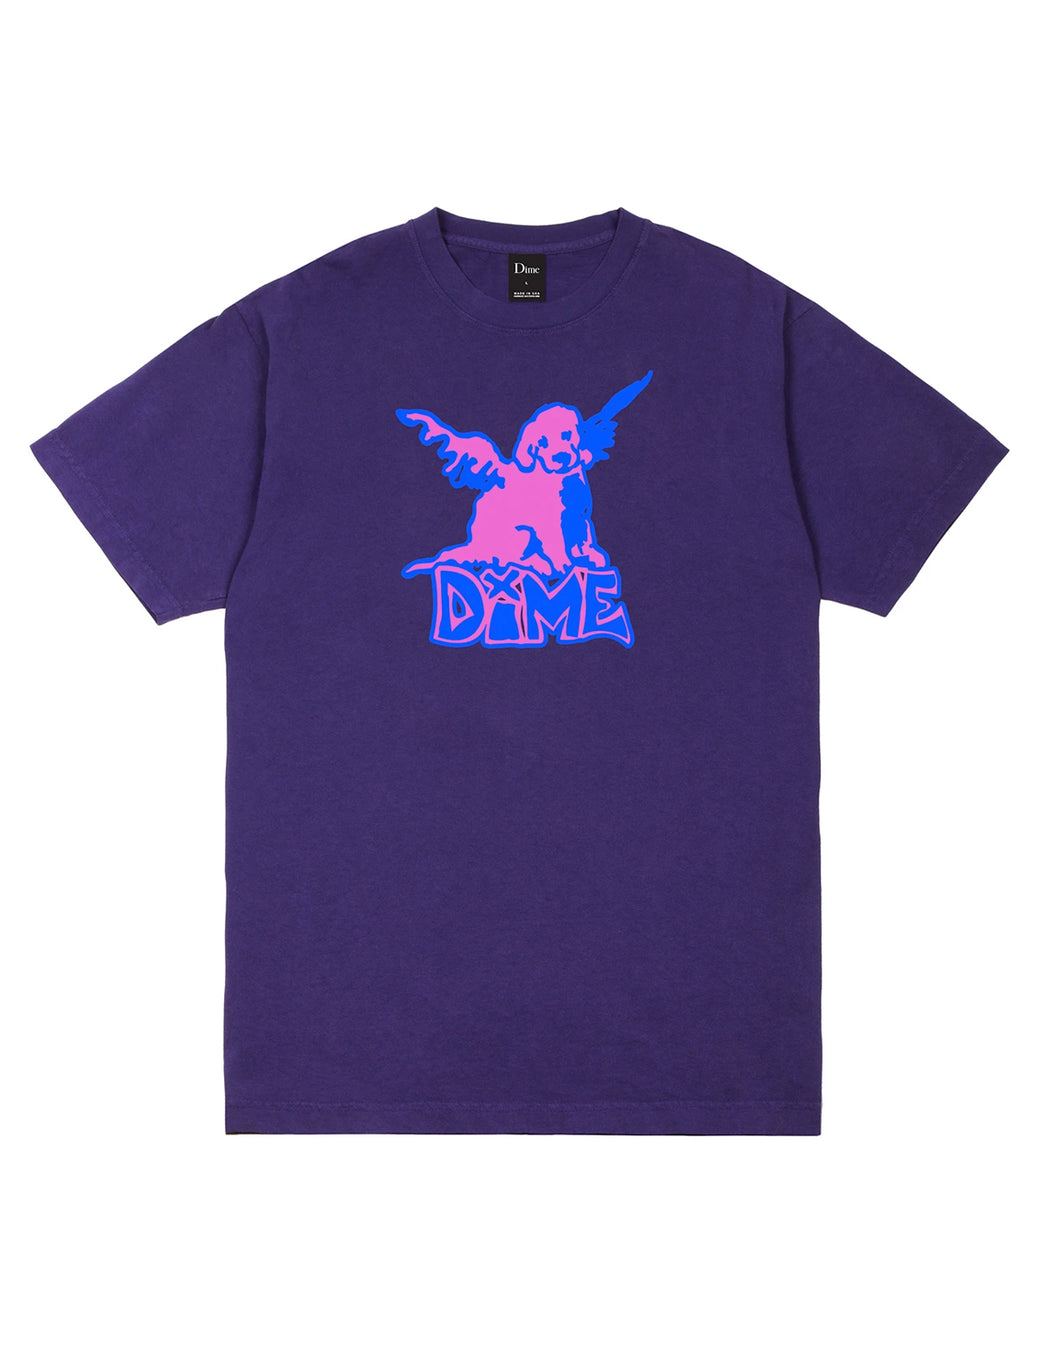 Dime Angel Tee, Purple